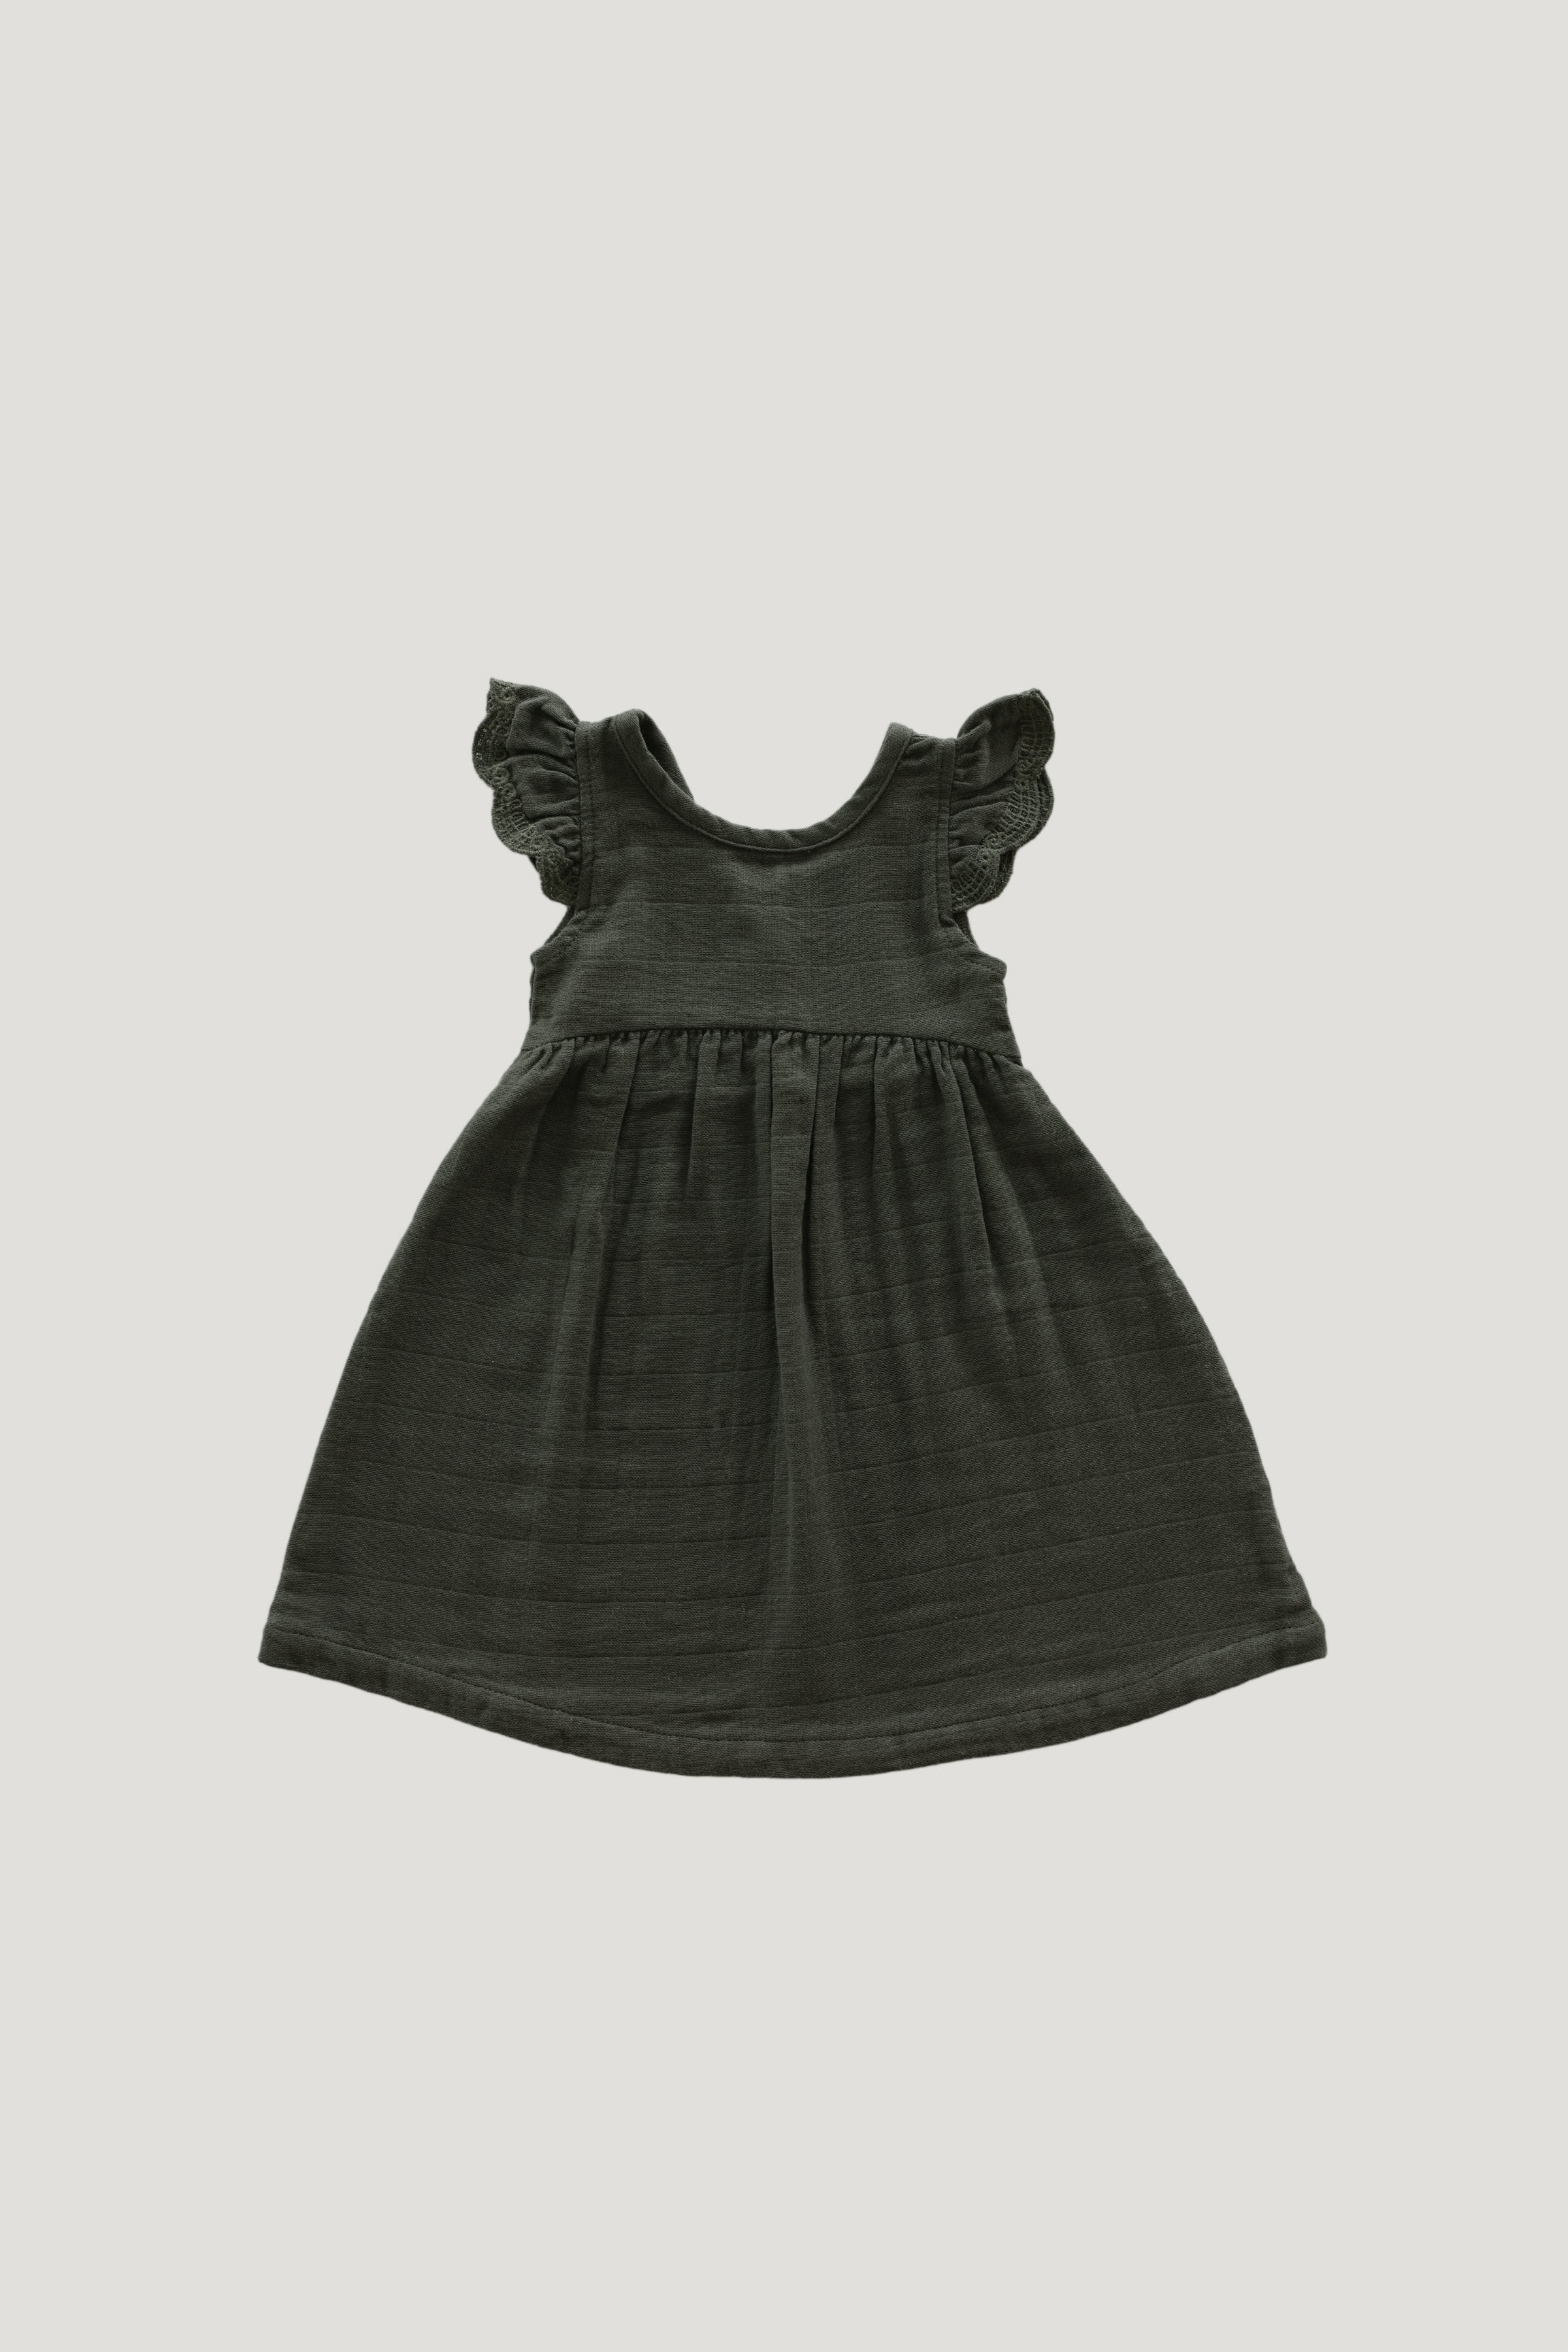 Organic Cotton Muslin Lace Dress - Juniper